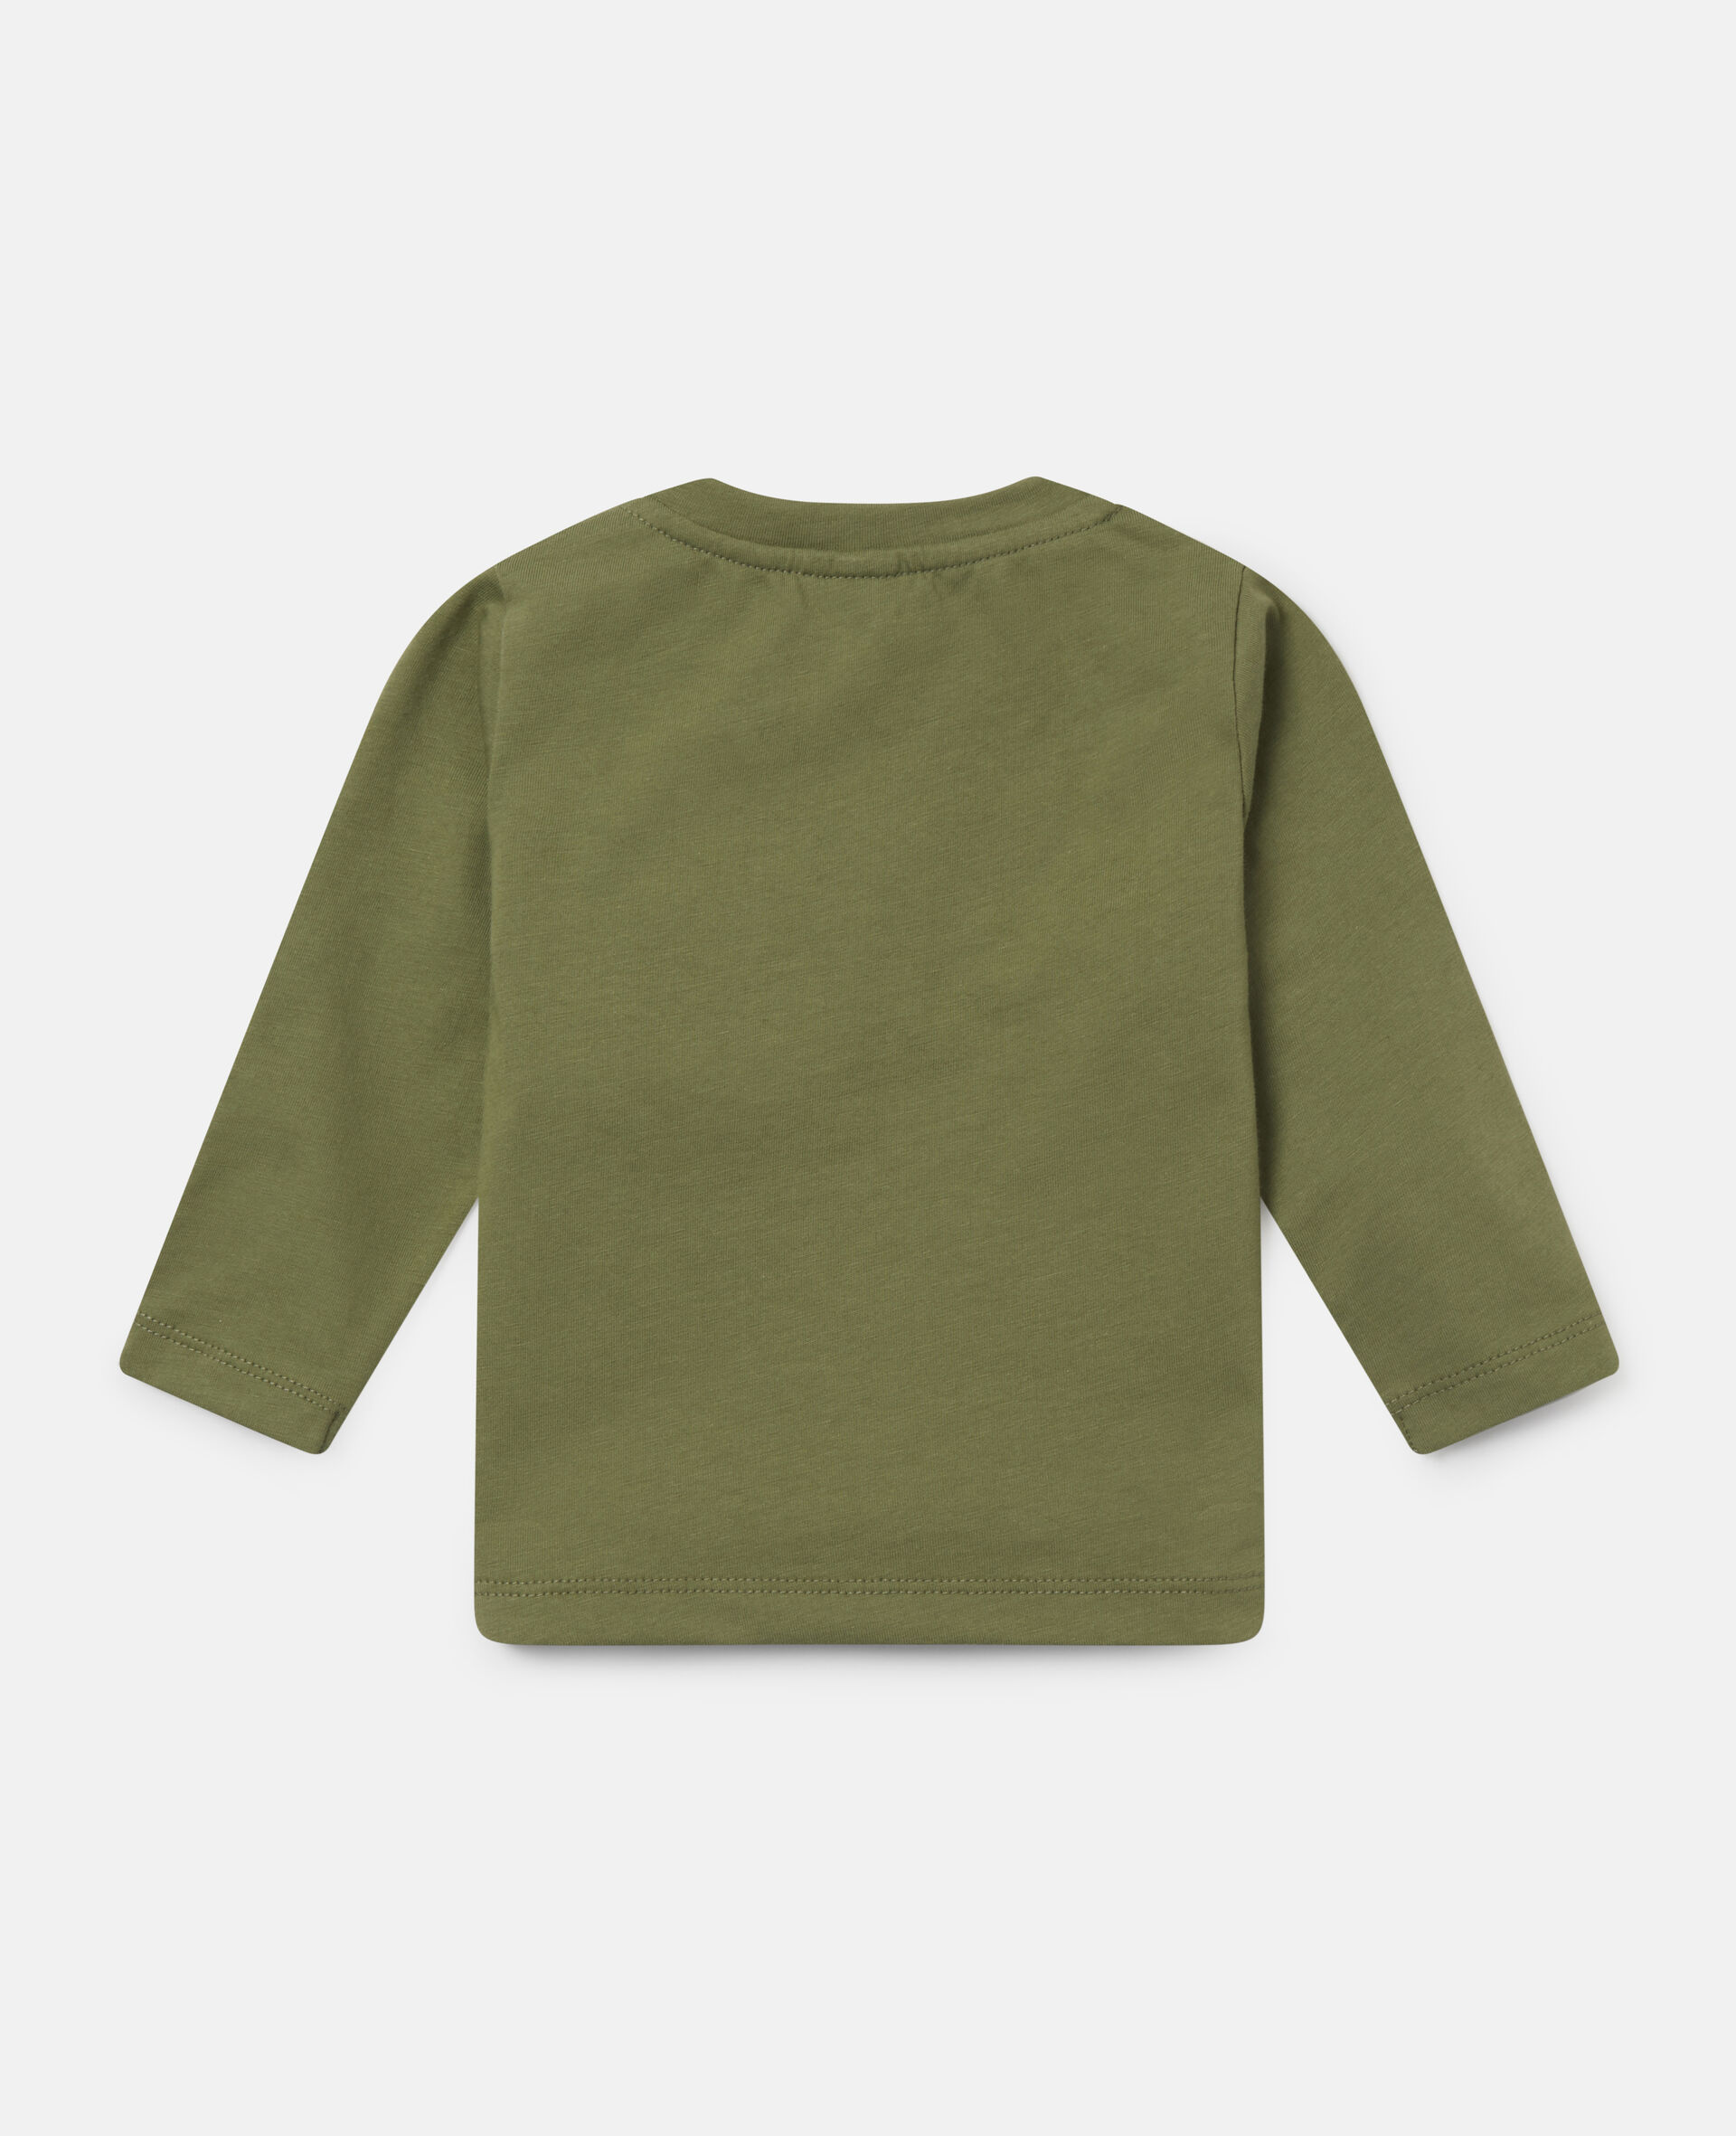 'Stay Wild' Cotton Top-Green-large image number 3